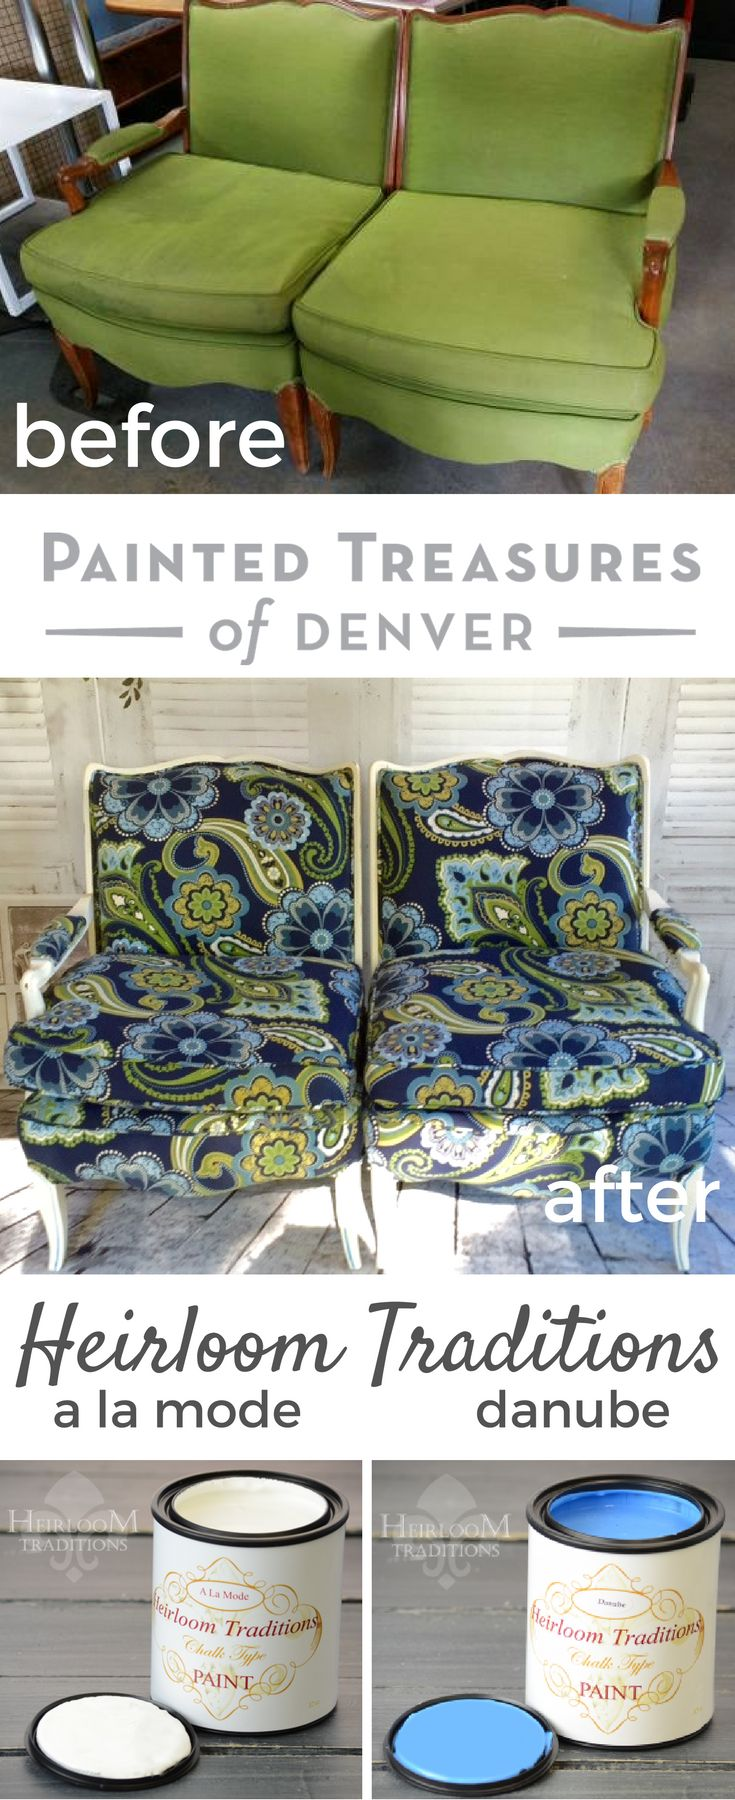 I Reupholstered Ugly Green Chairs With A Fun Floral Fabric And Repainted  Them With Heirloom Traditionu0027s A La Mode And Danube On The Trim.